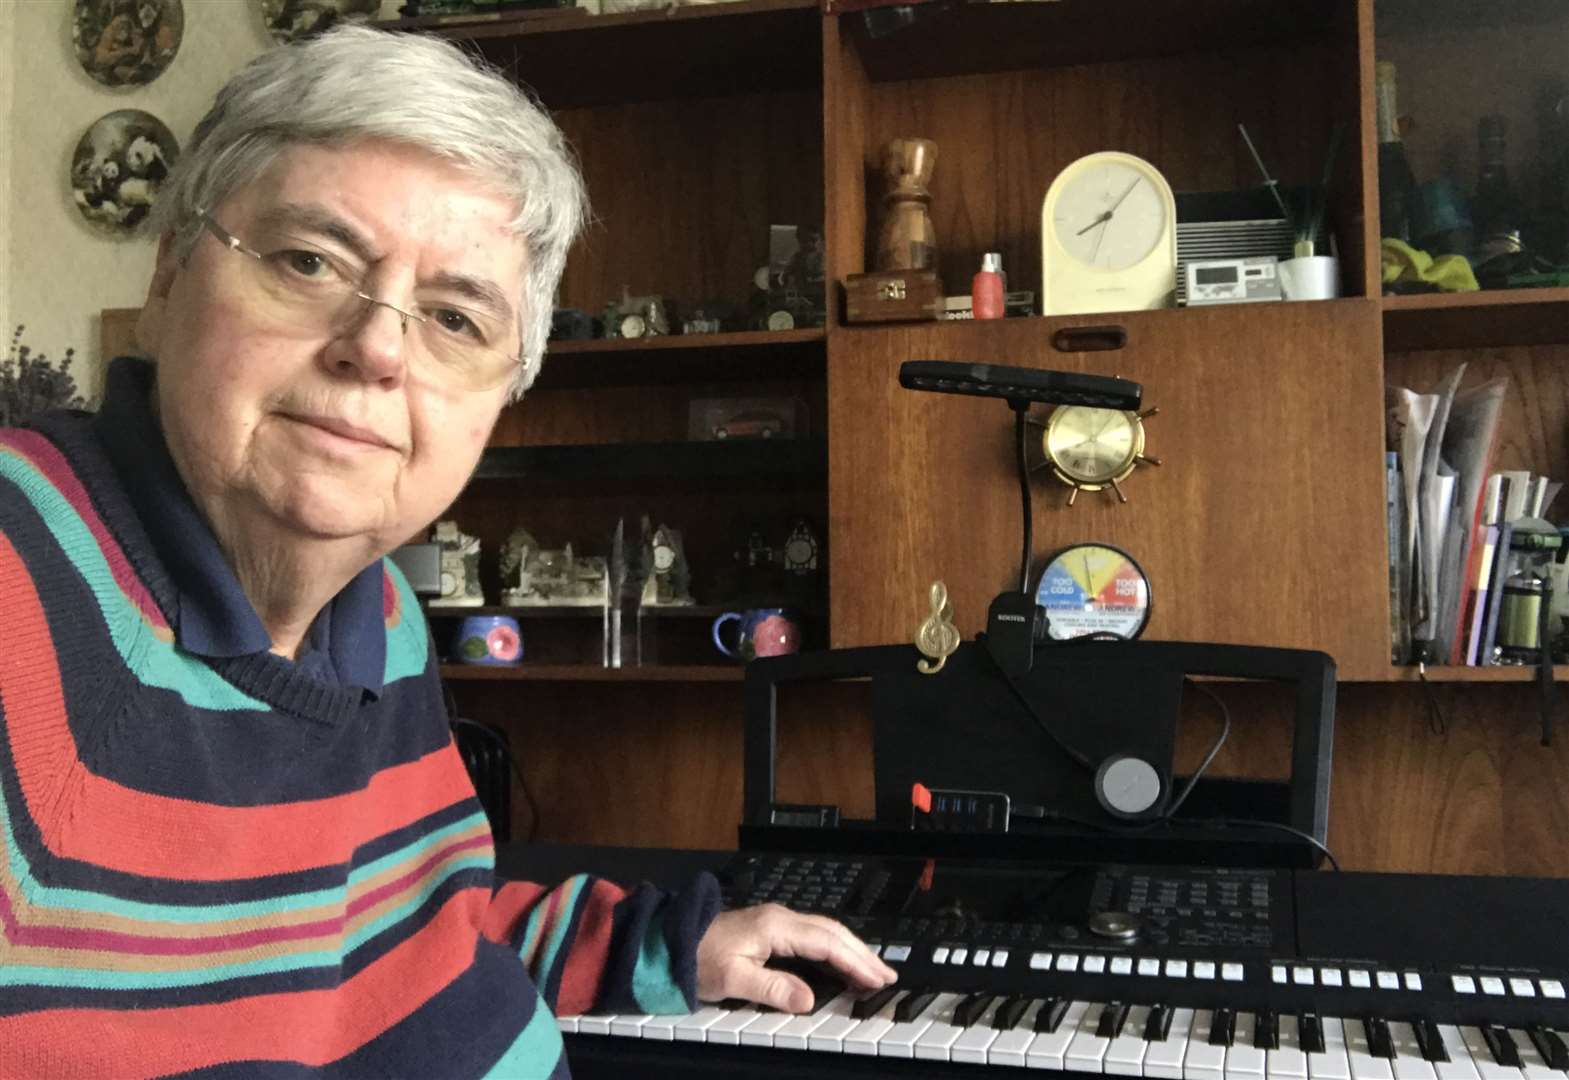 West Norfolk musician to play 12-hours without stopping